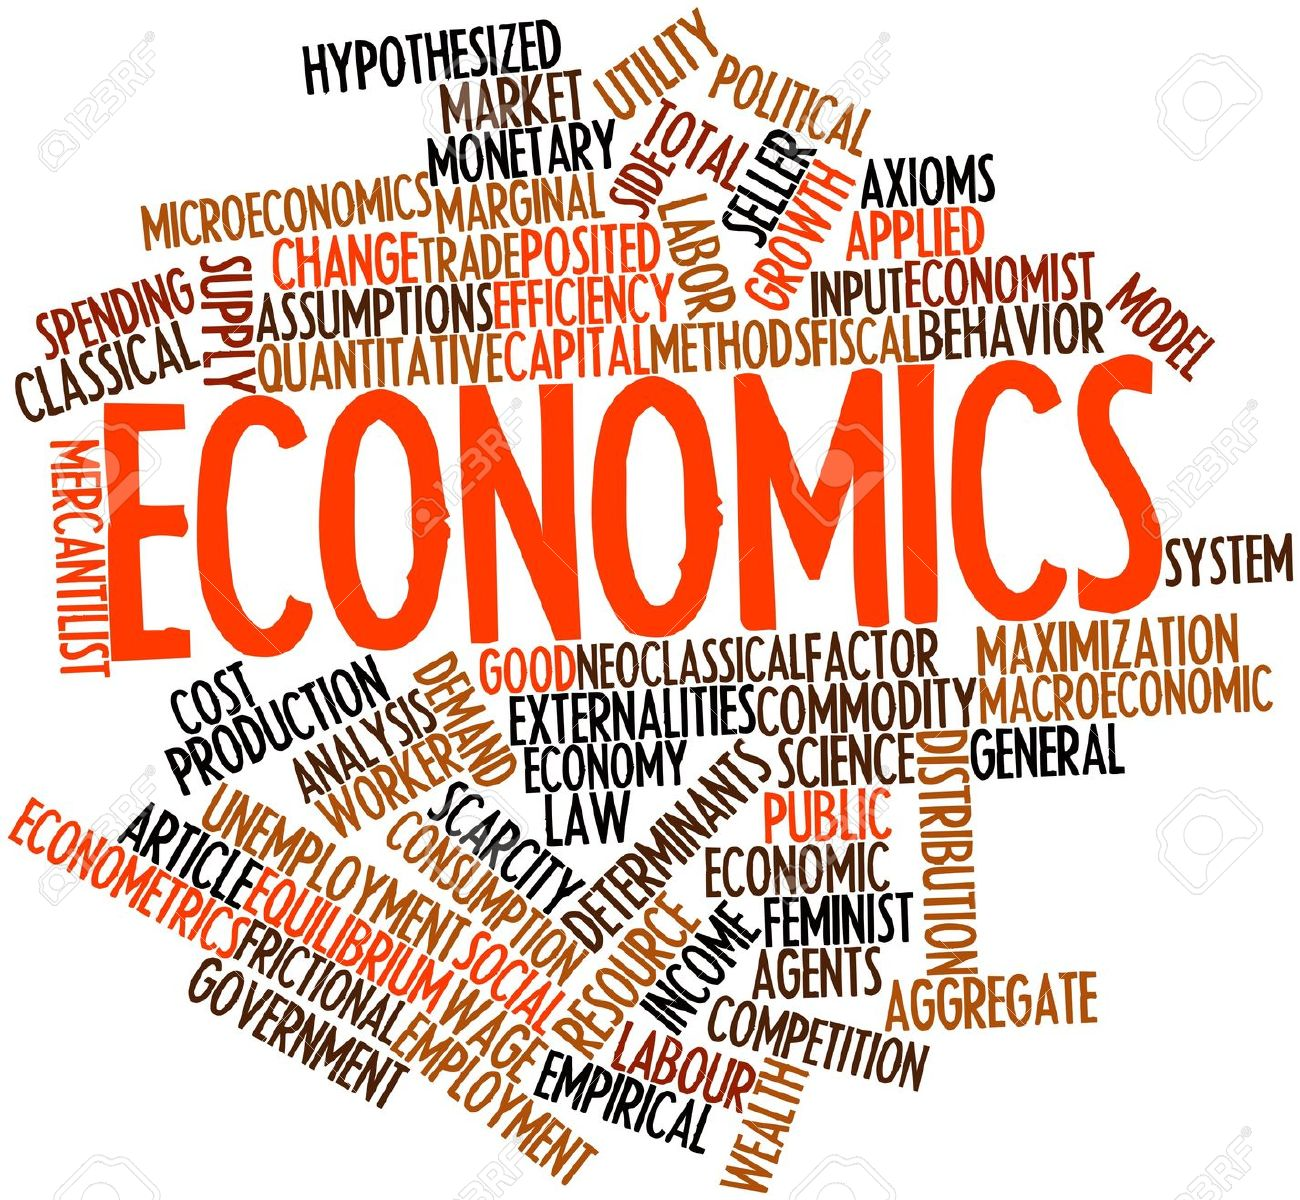 Economics is business studies a humanities subject